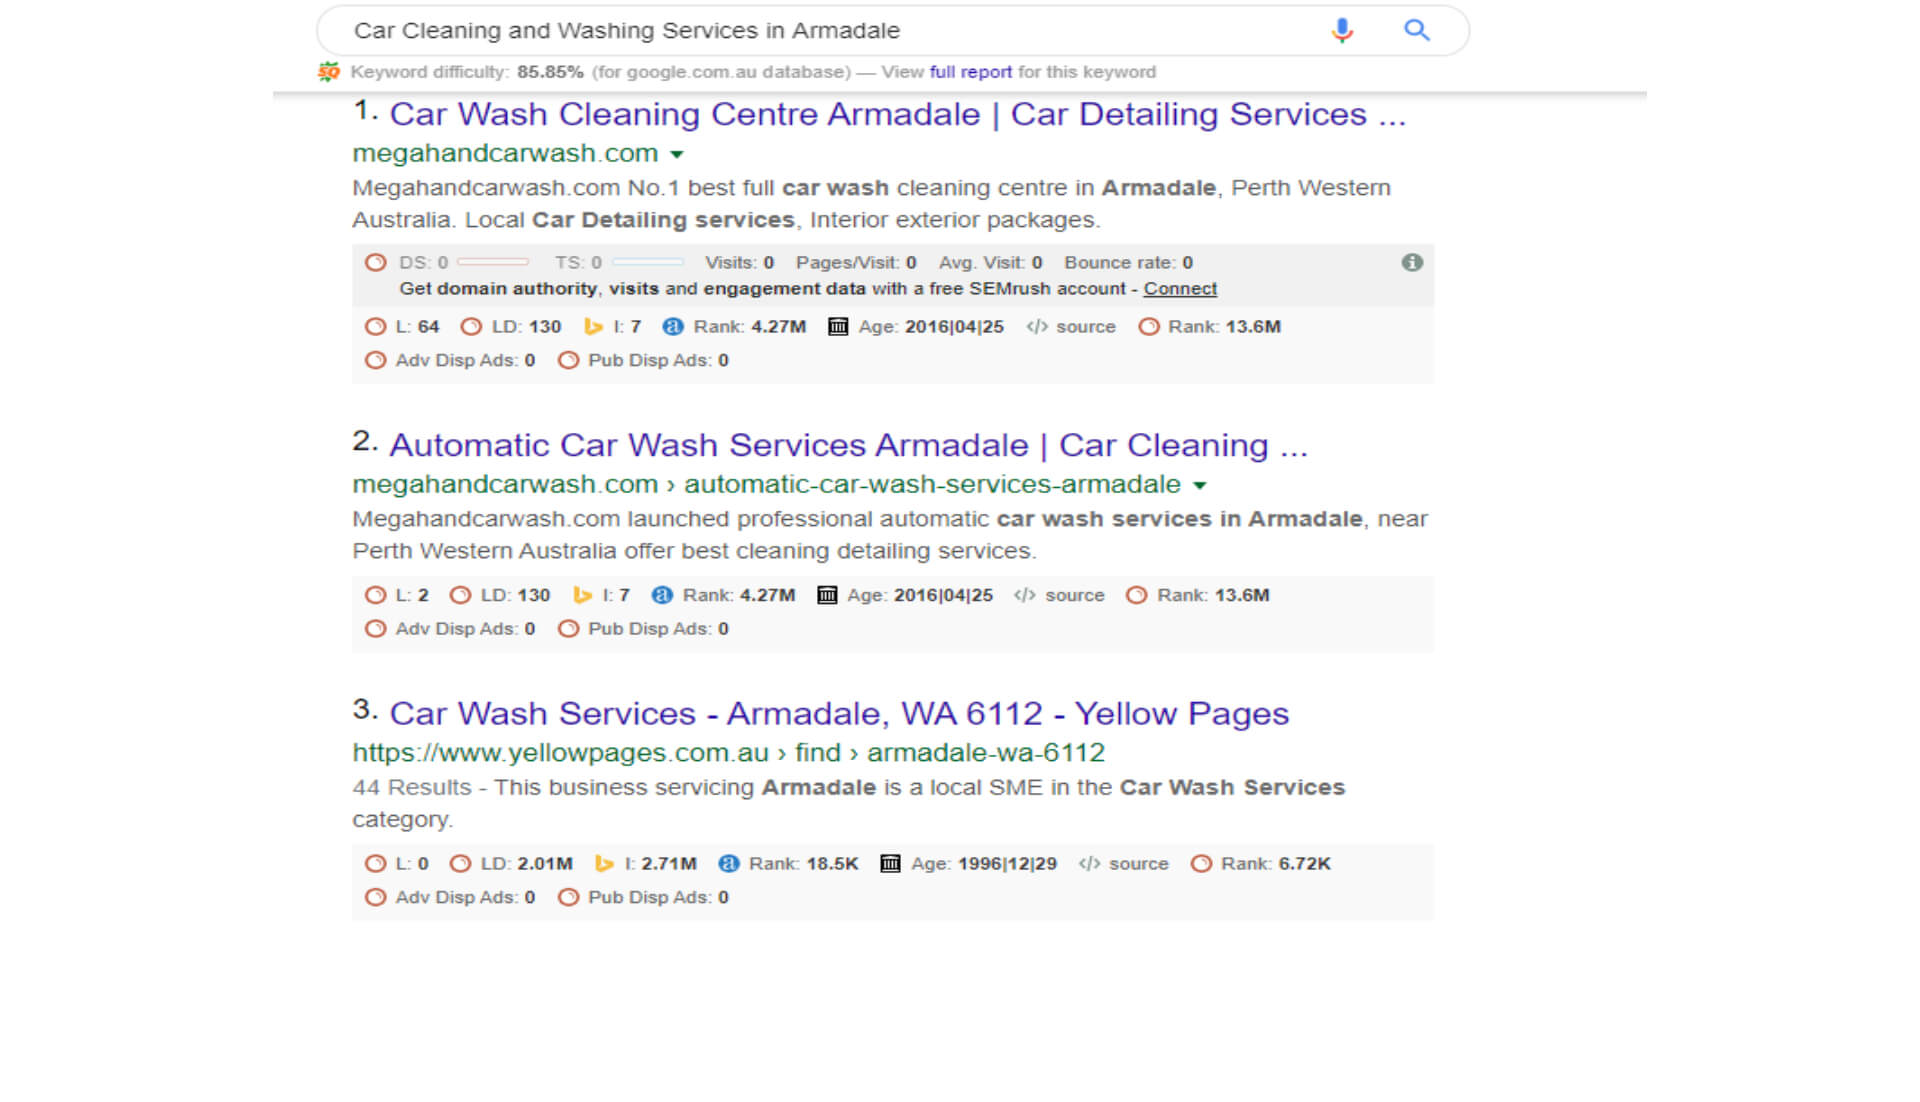 Car Cleaning and Washing Services in Armadale